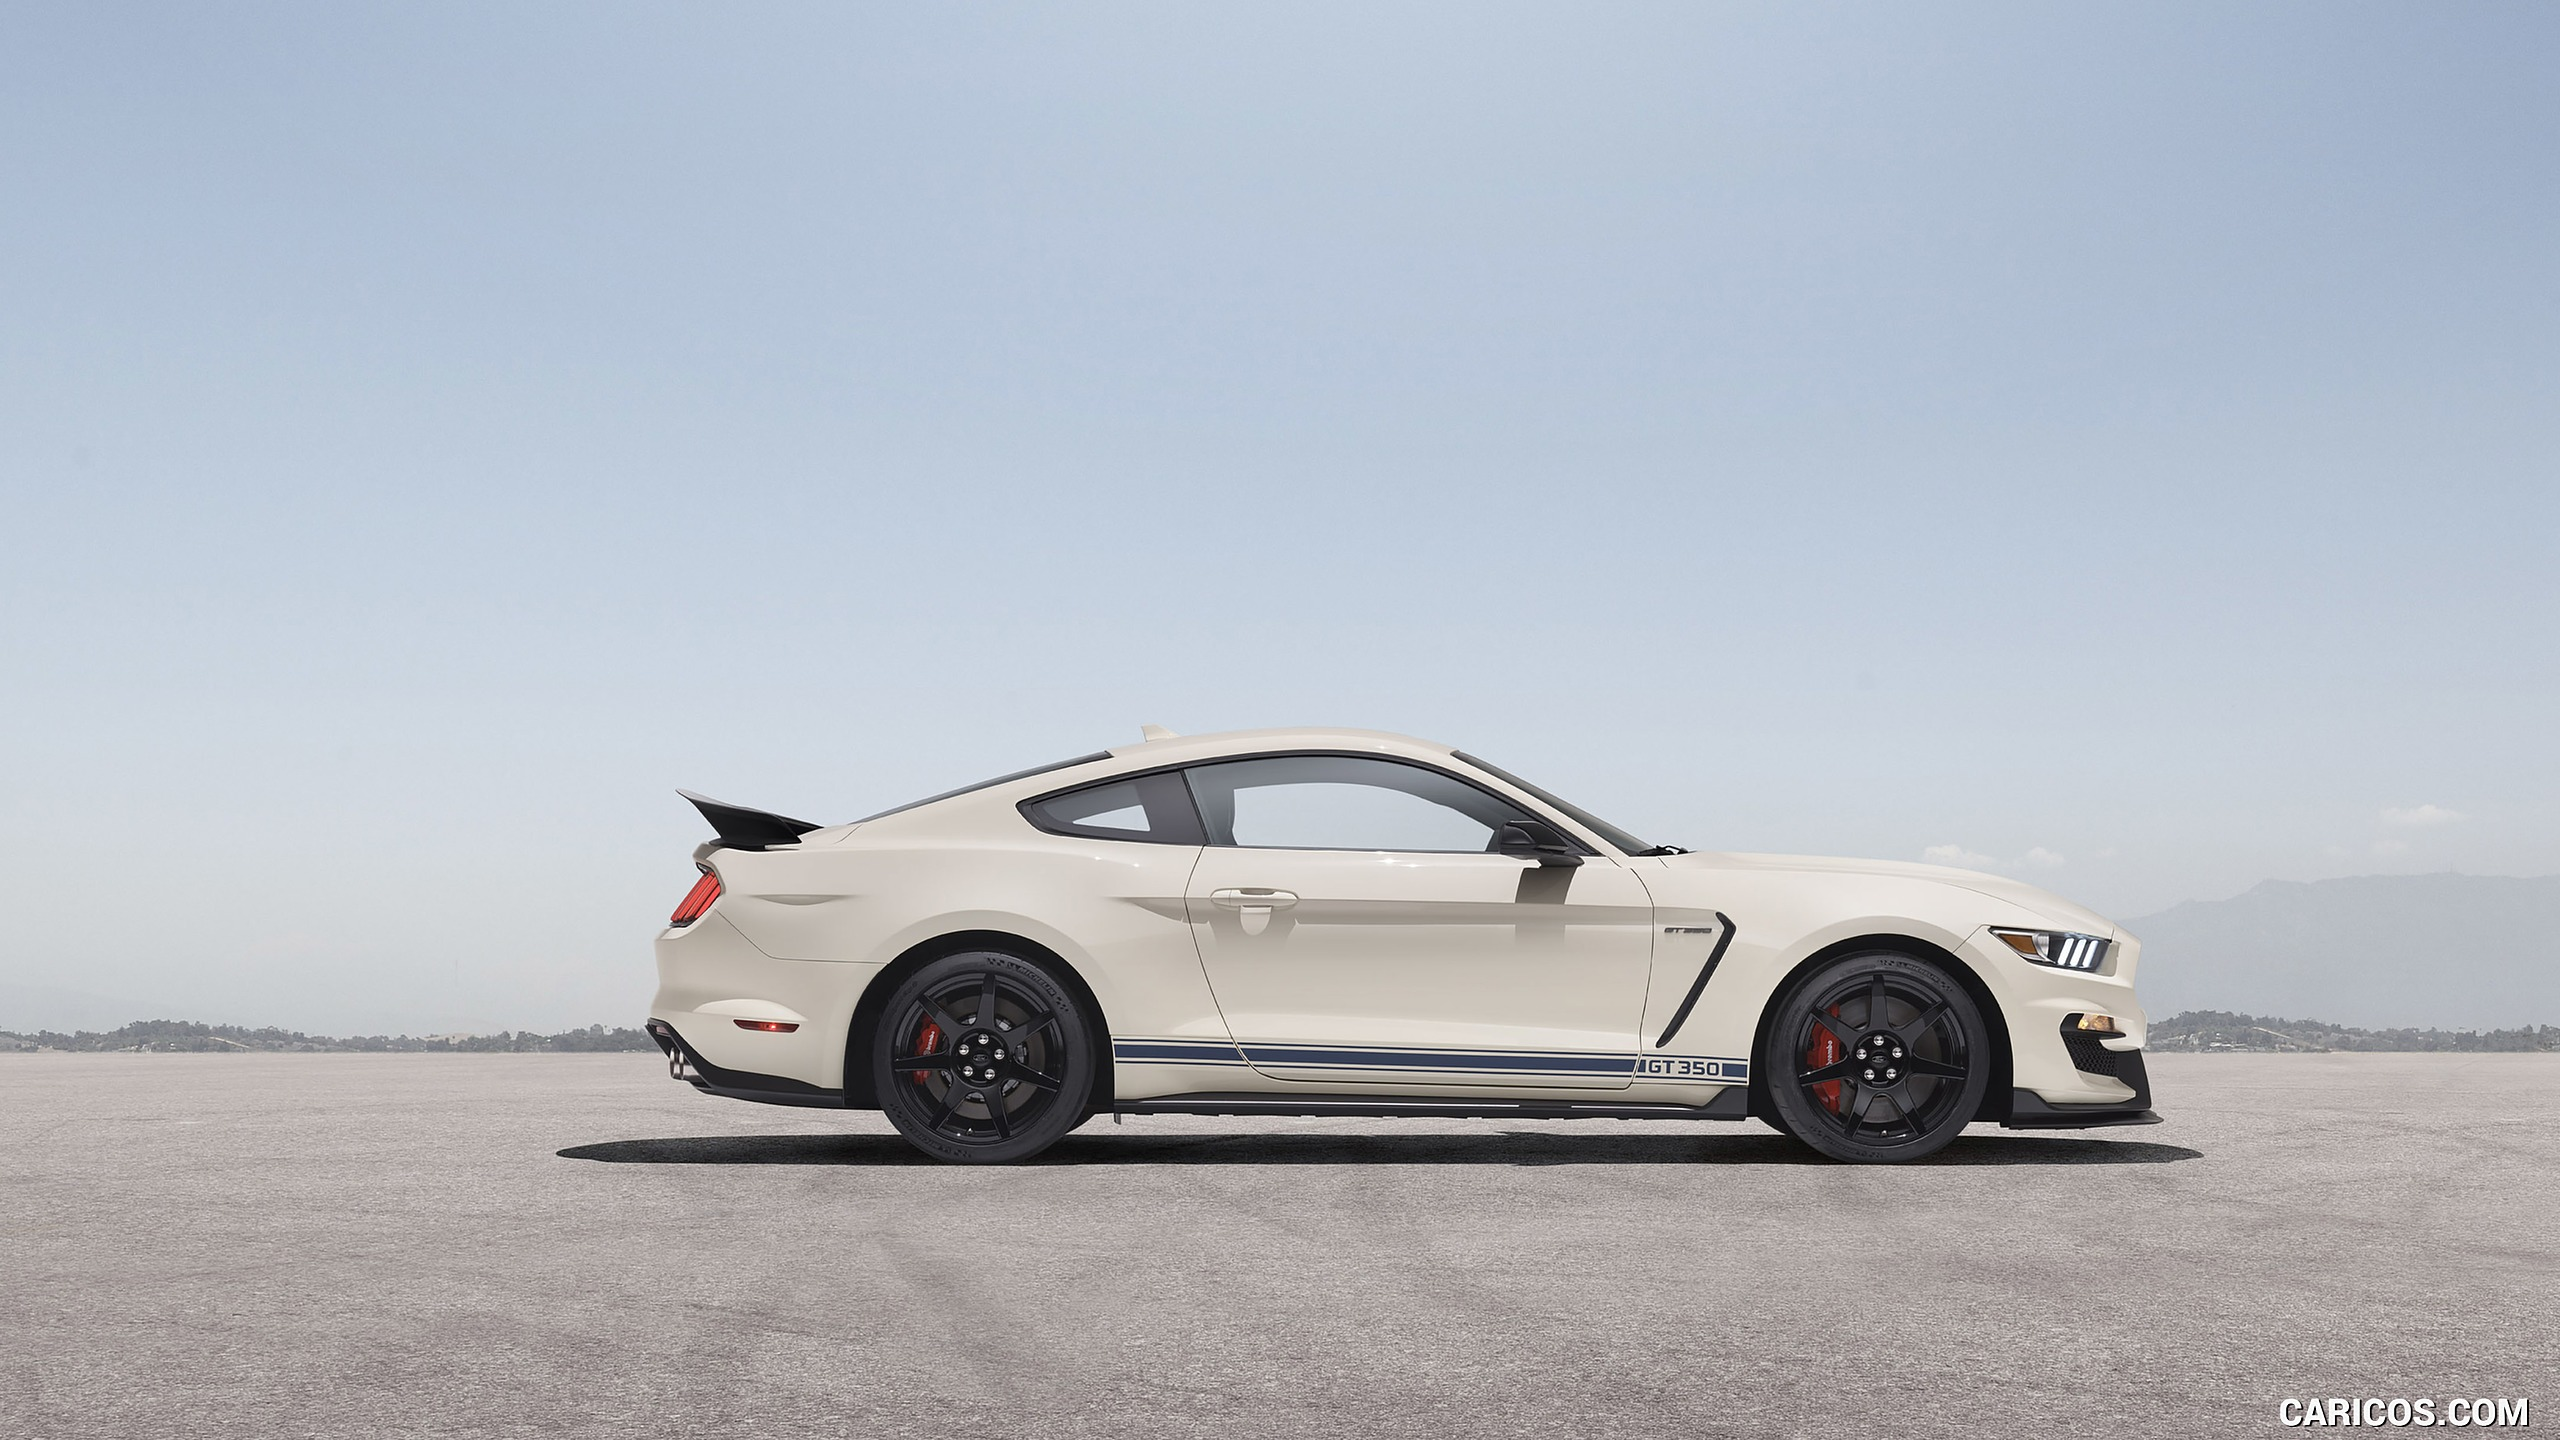 2020 Ford Mustang Shelby GT350 Heritage Edition Package   Side 2560x1440